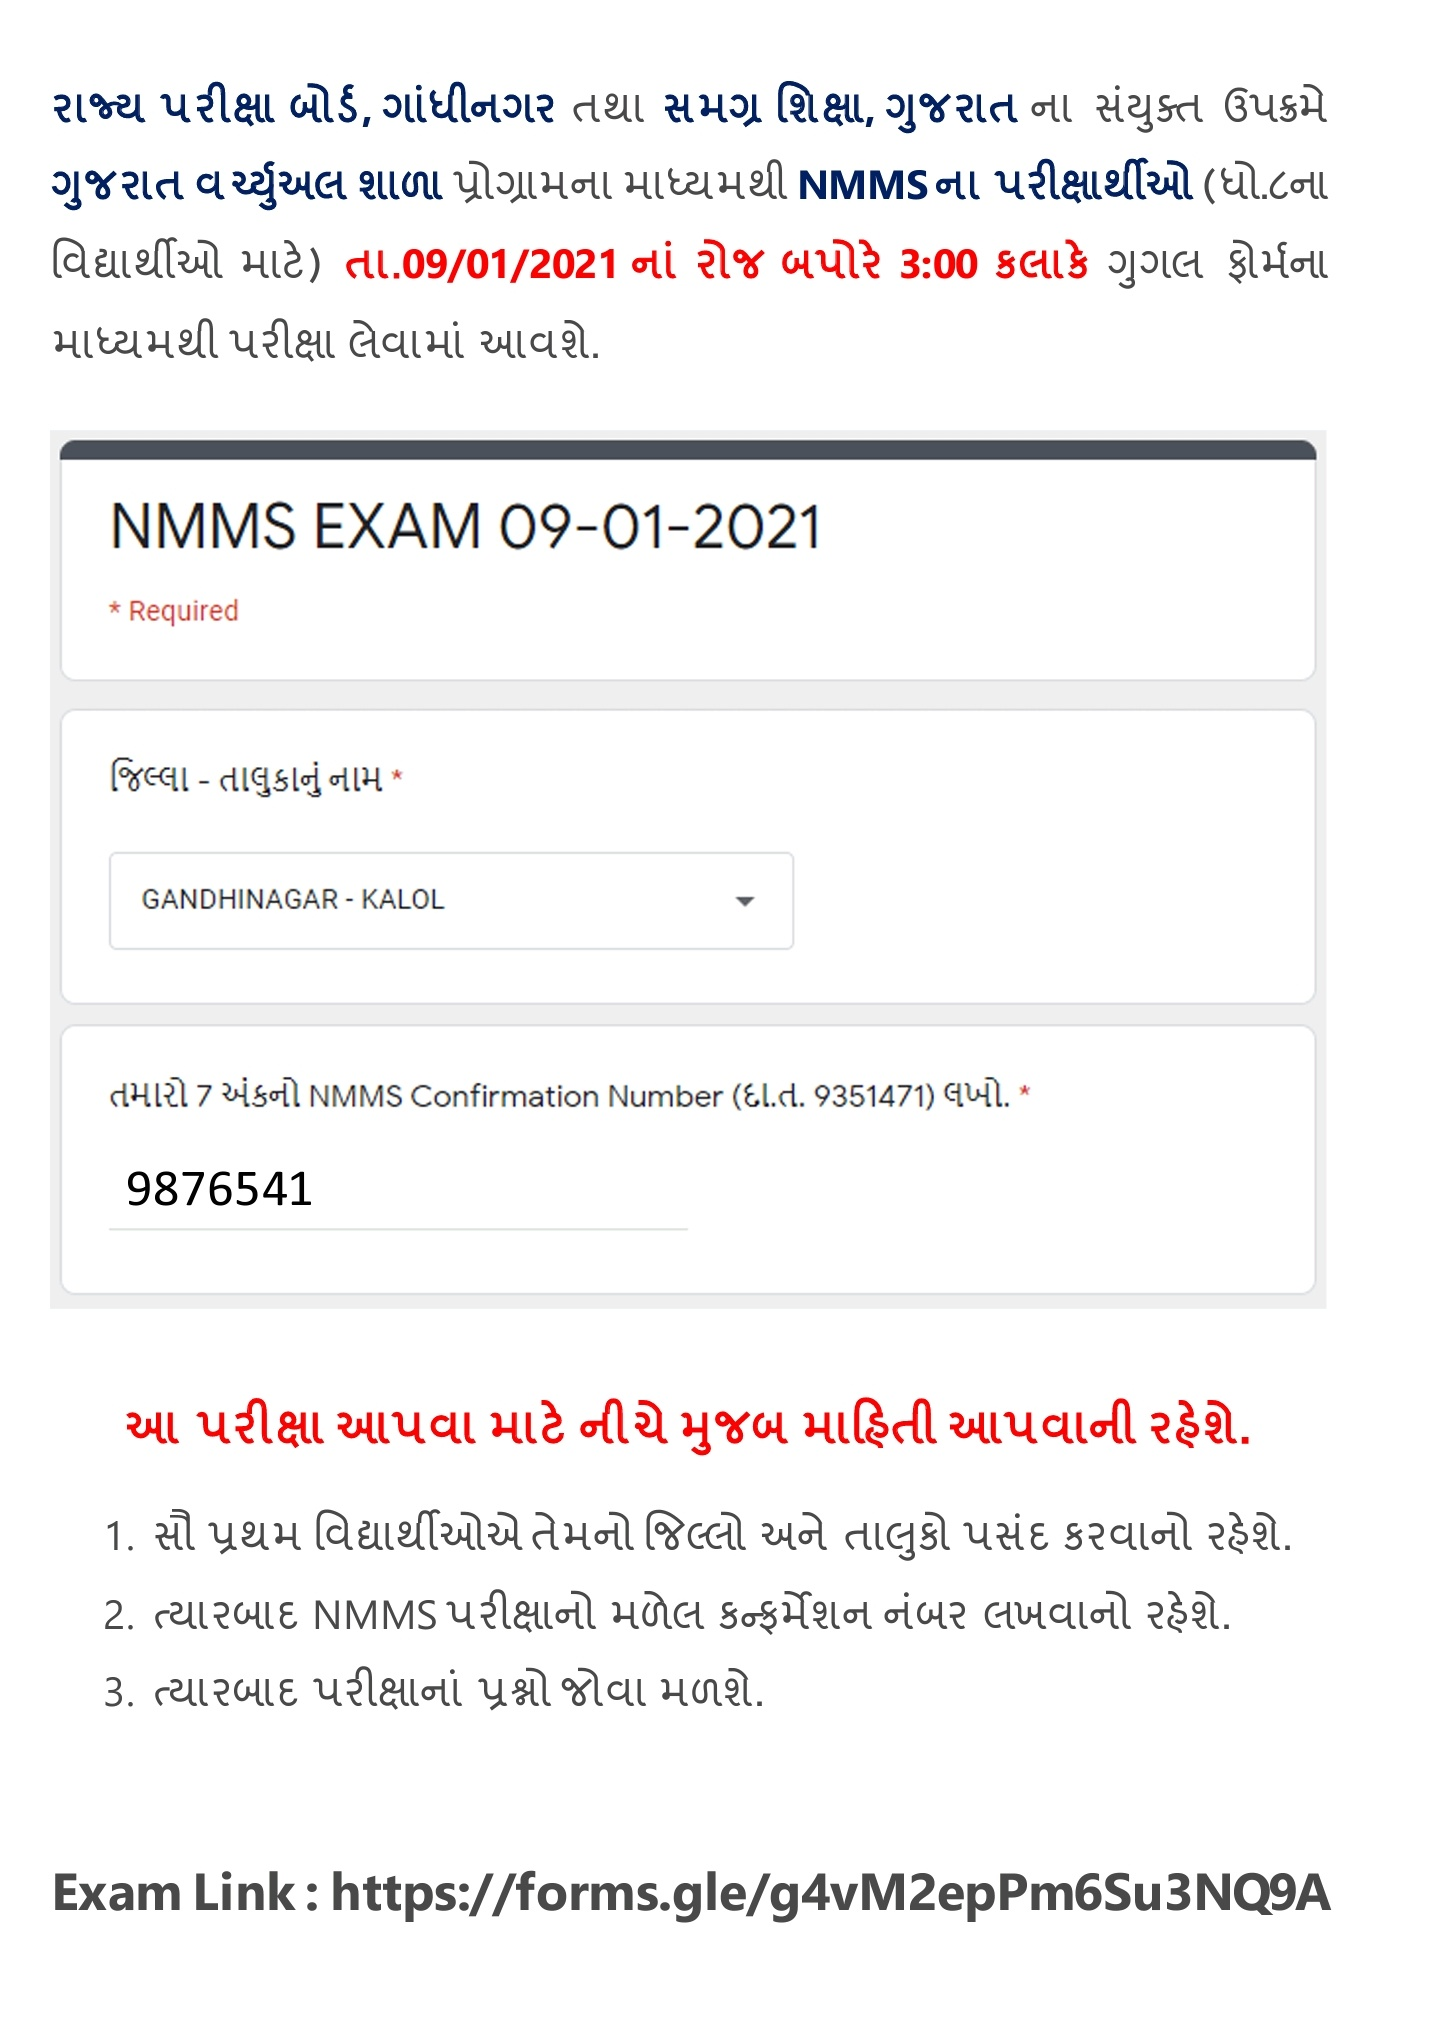 http://www.pravinvankar.in/2021/01/nmms-examinees-are-requested-to-report.html